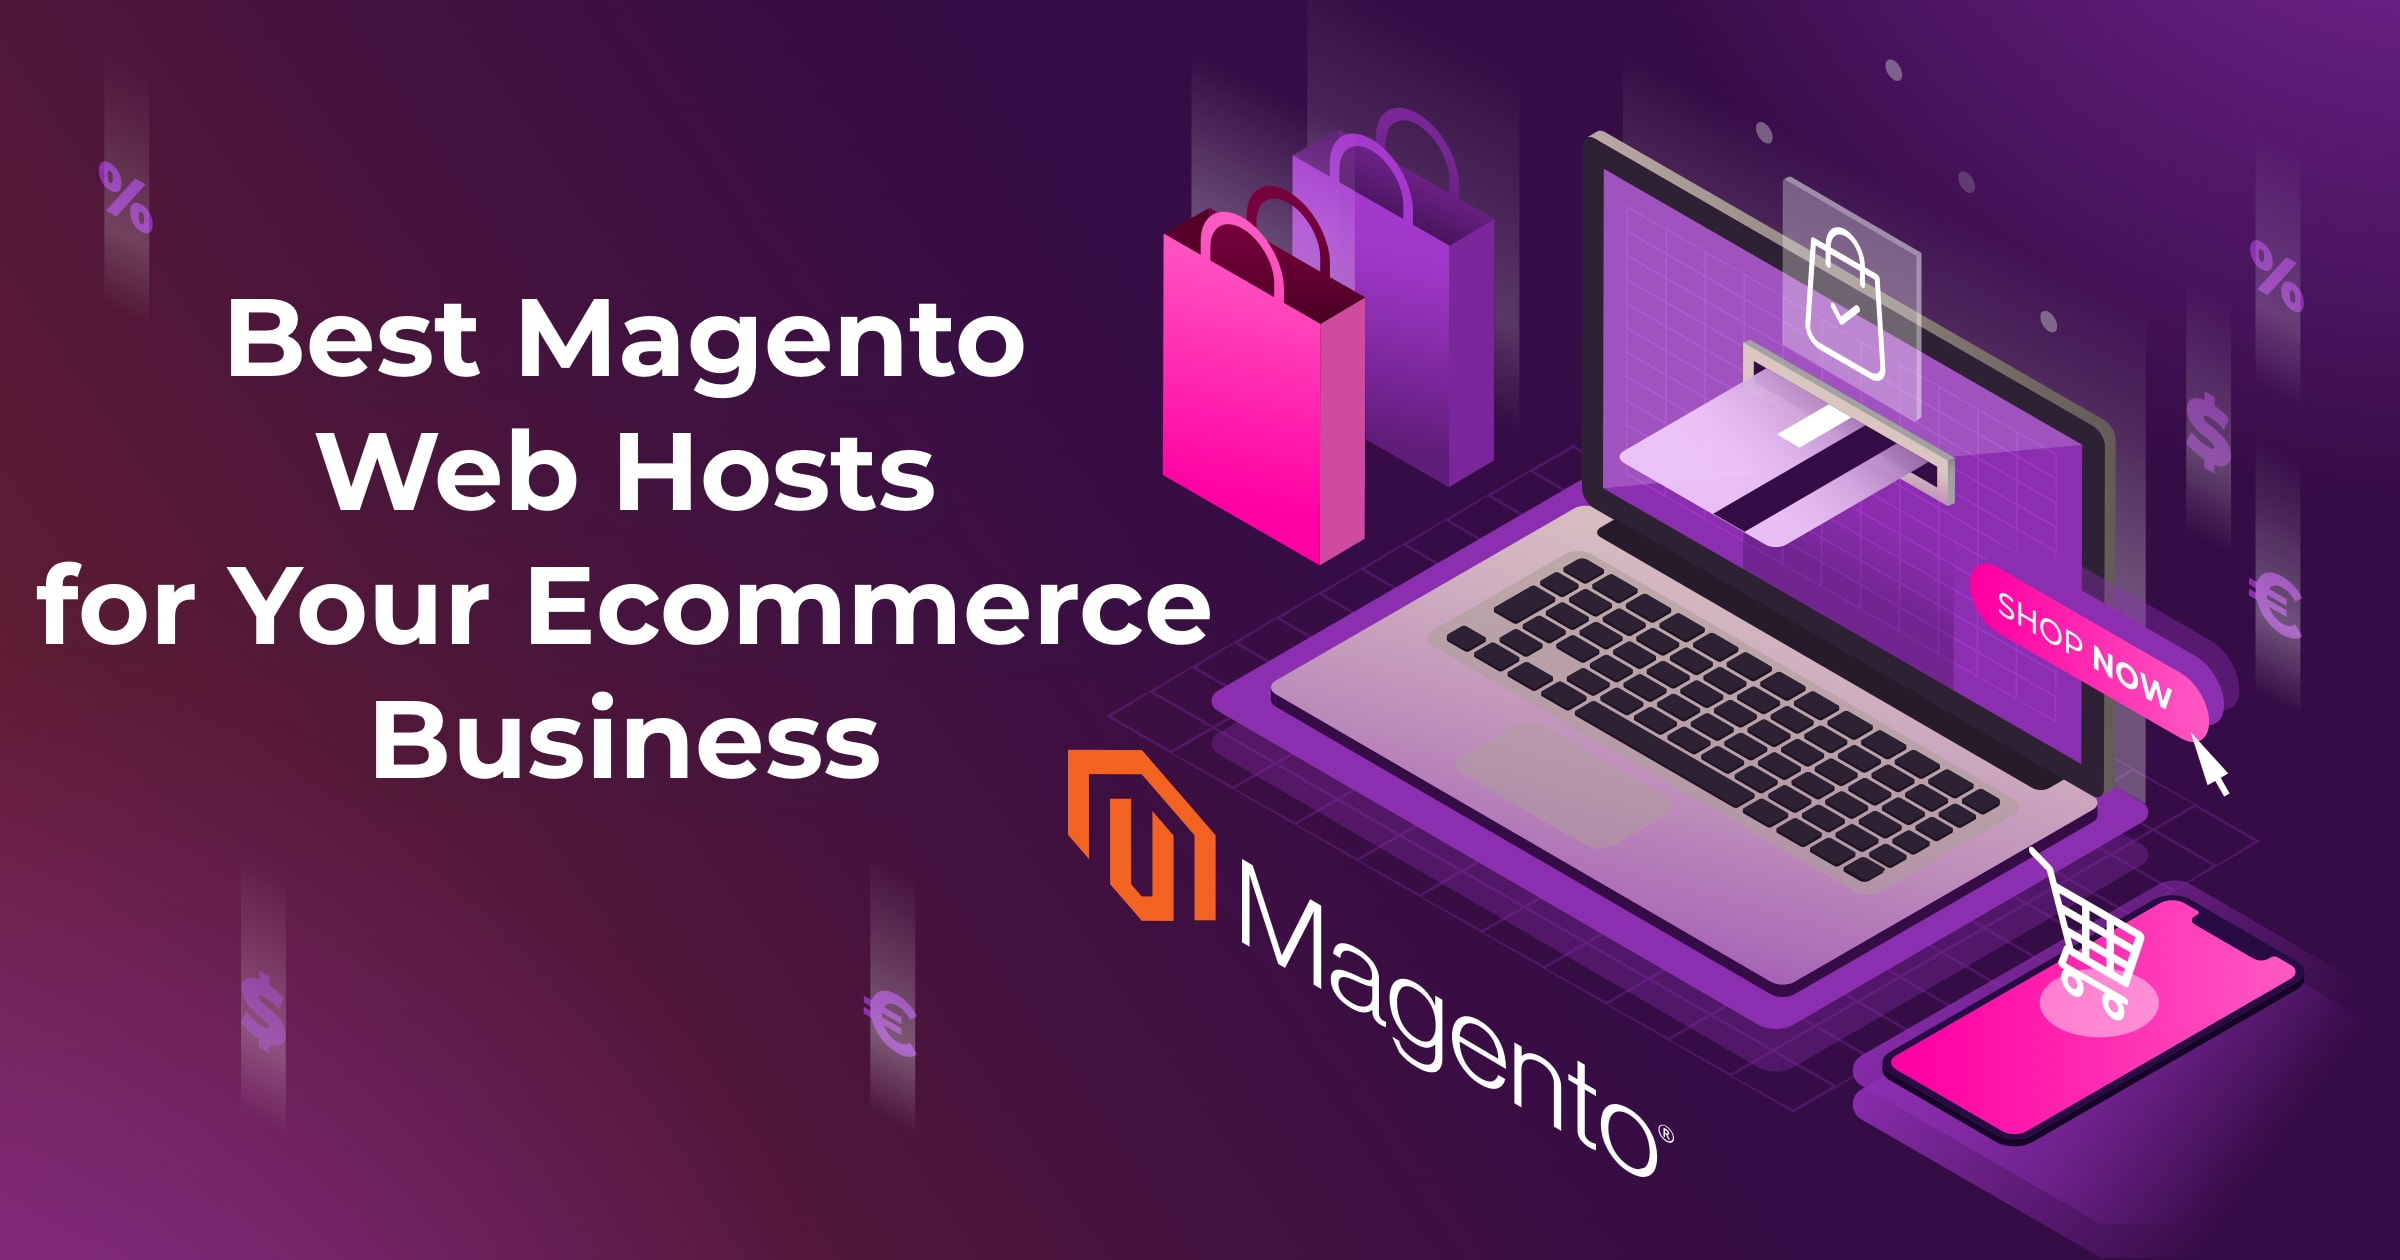 20 Best FREE Magento Web Hosts for E Commerce in 20